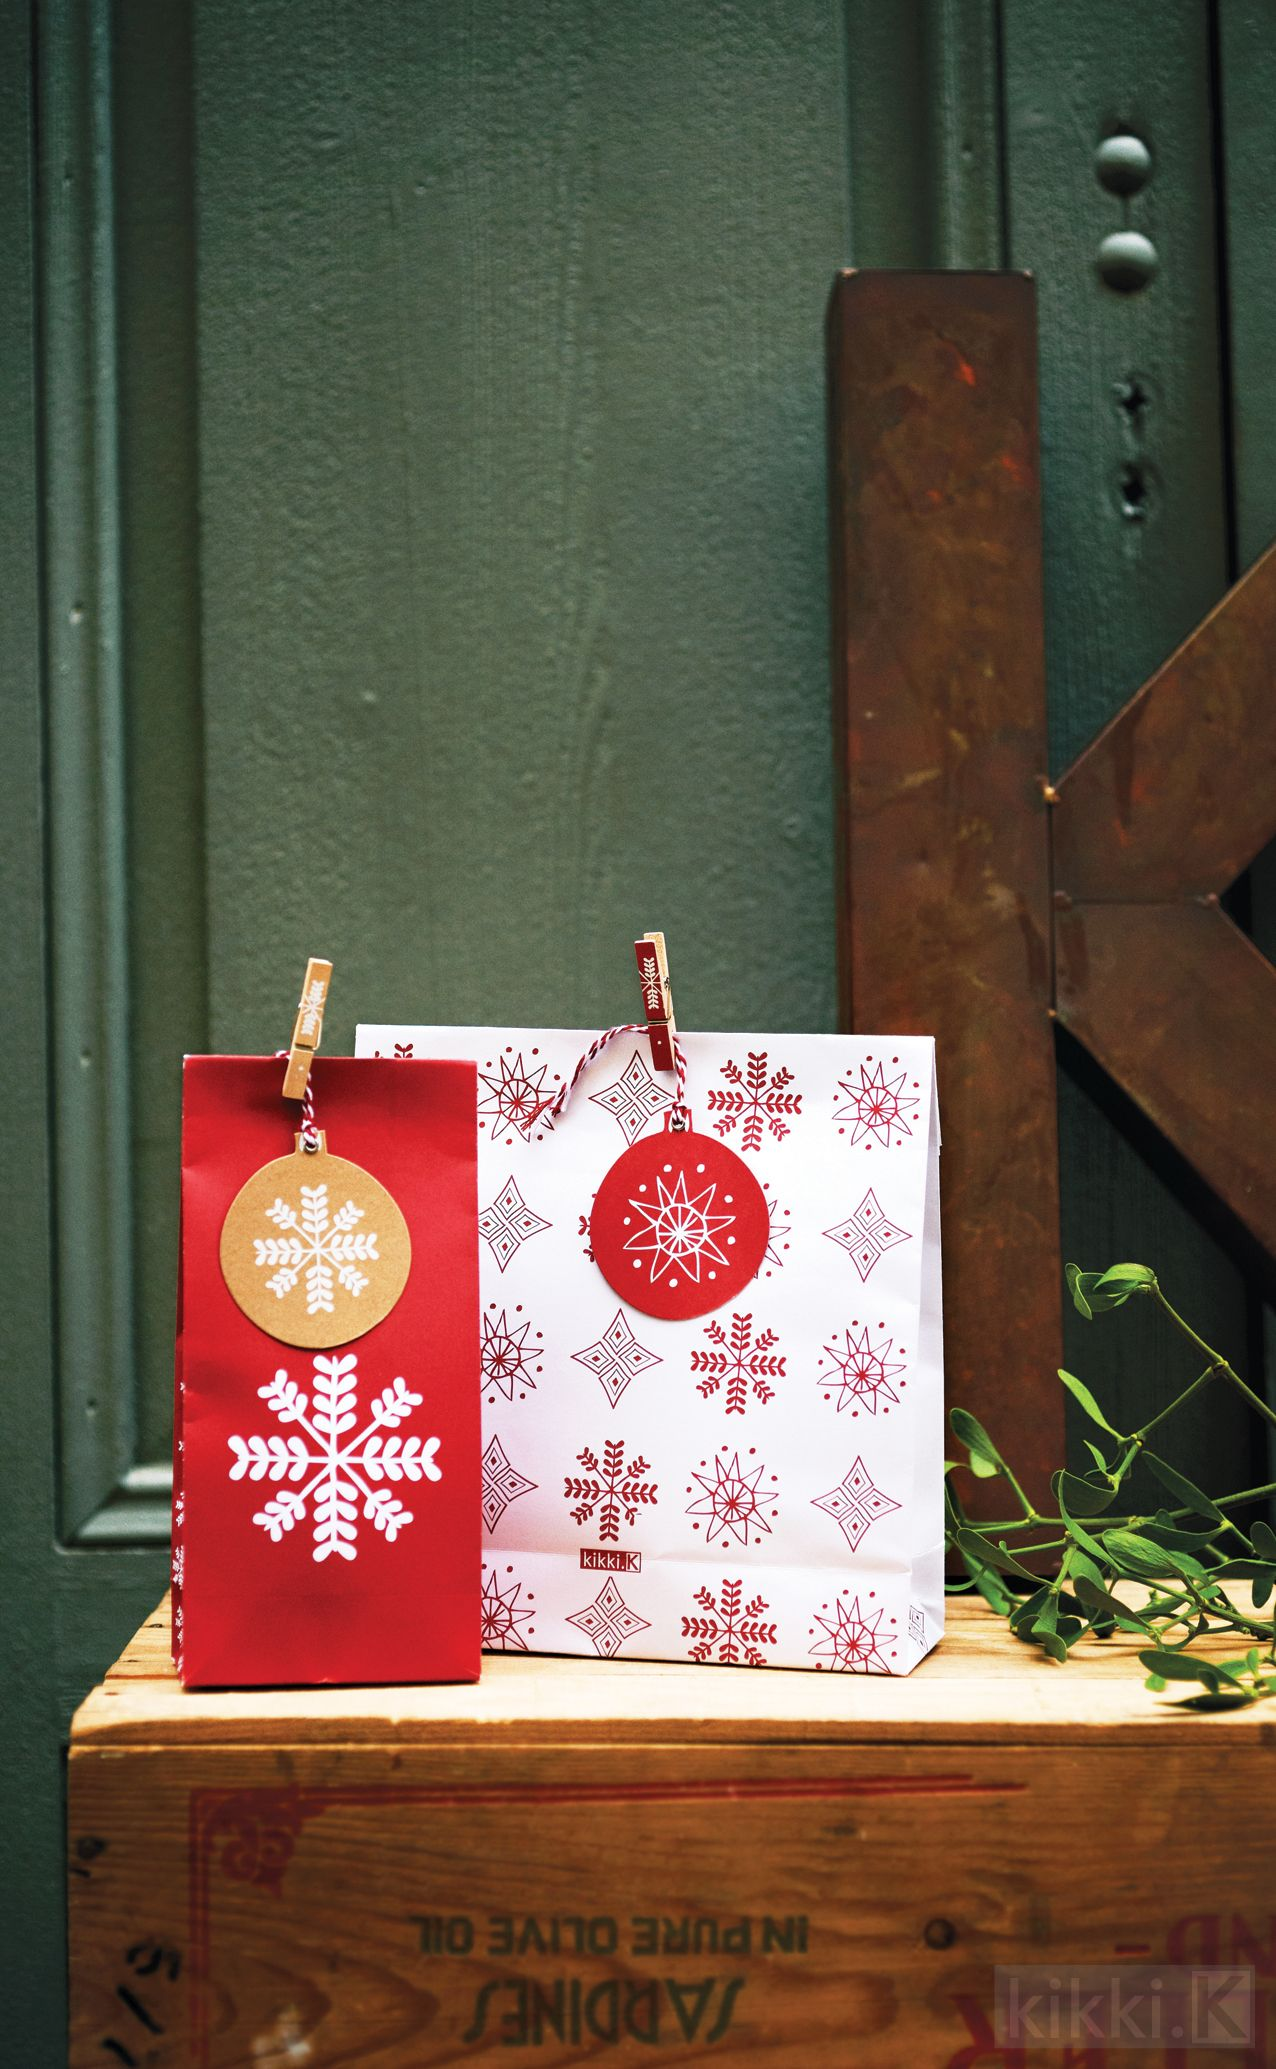 Delicious kikkik christmas goodie bags but use larger